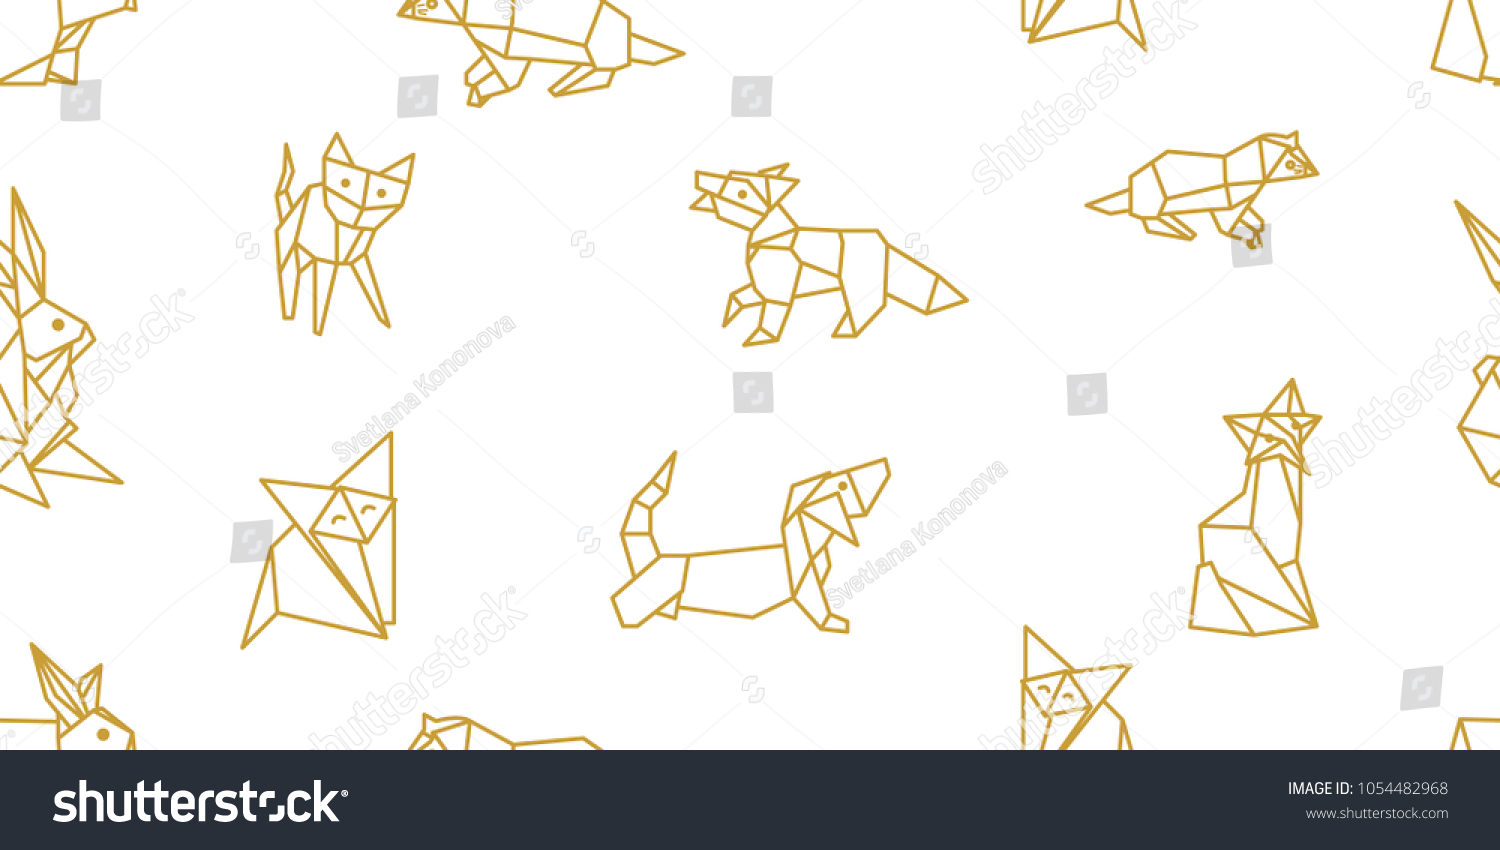 Origami Animals Seamless Vector Pattern Hares Stock Royalty Dinosaurs Diagrams Embroidery With Foxes Cats Dogs And Abstract